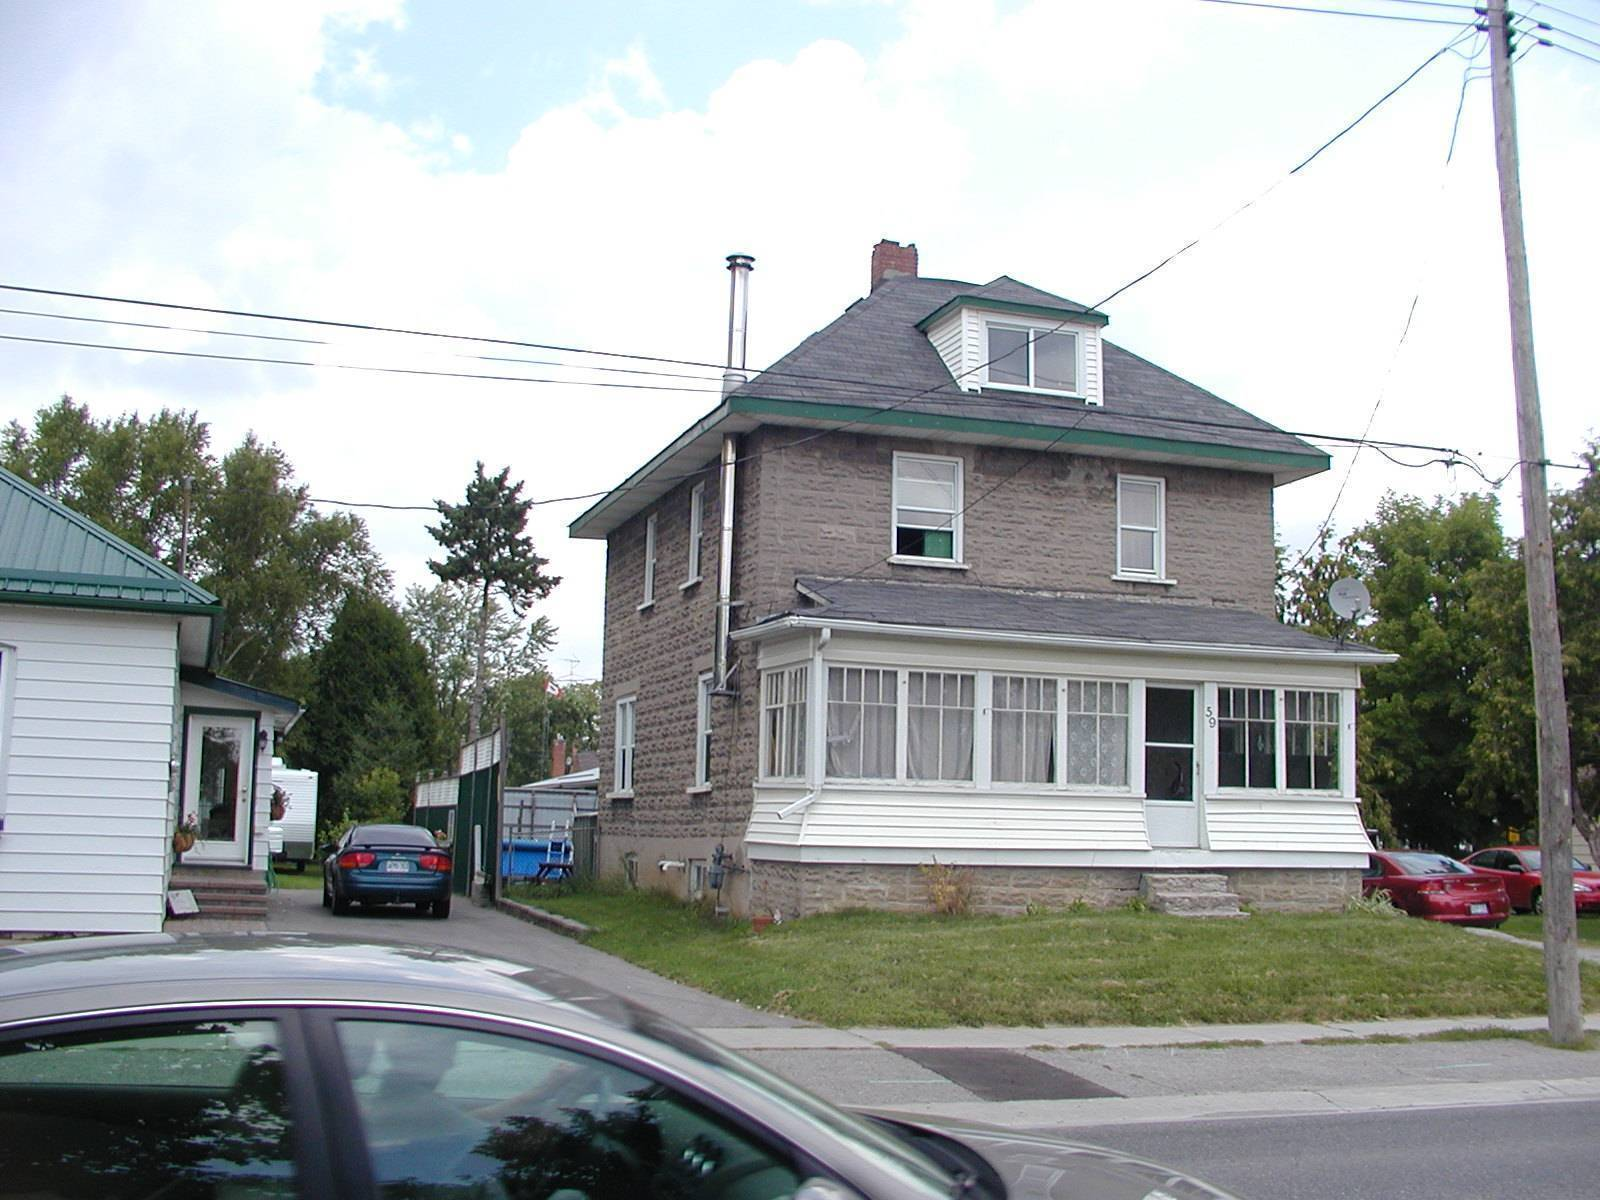 house for sale lindsay ontario canada georgeous home